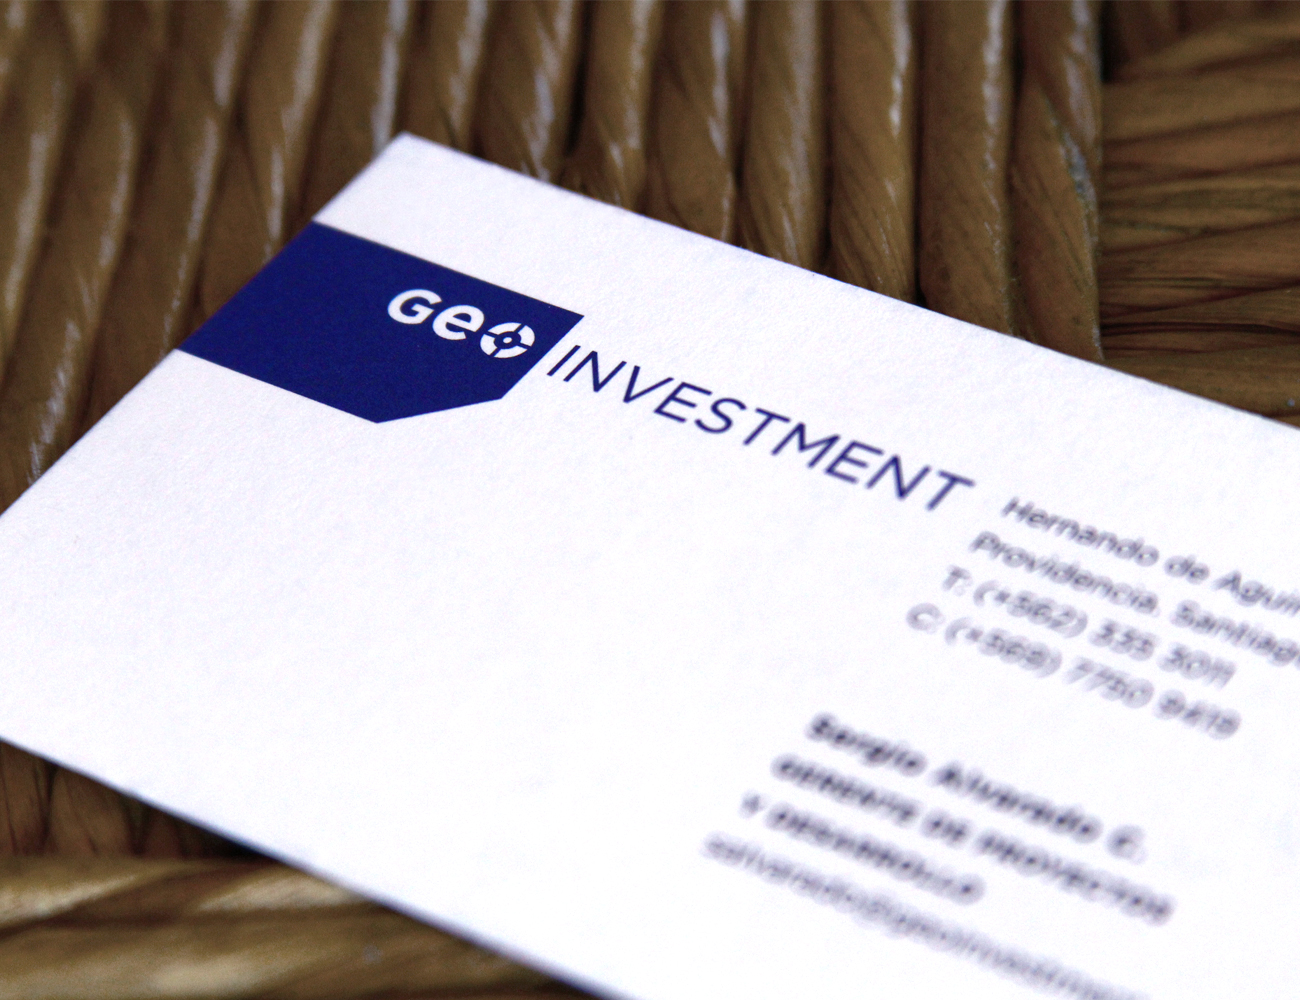 Geoinvestment-05